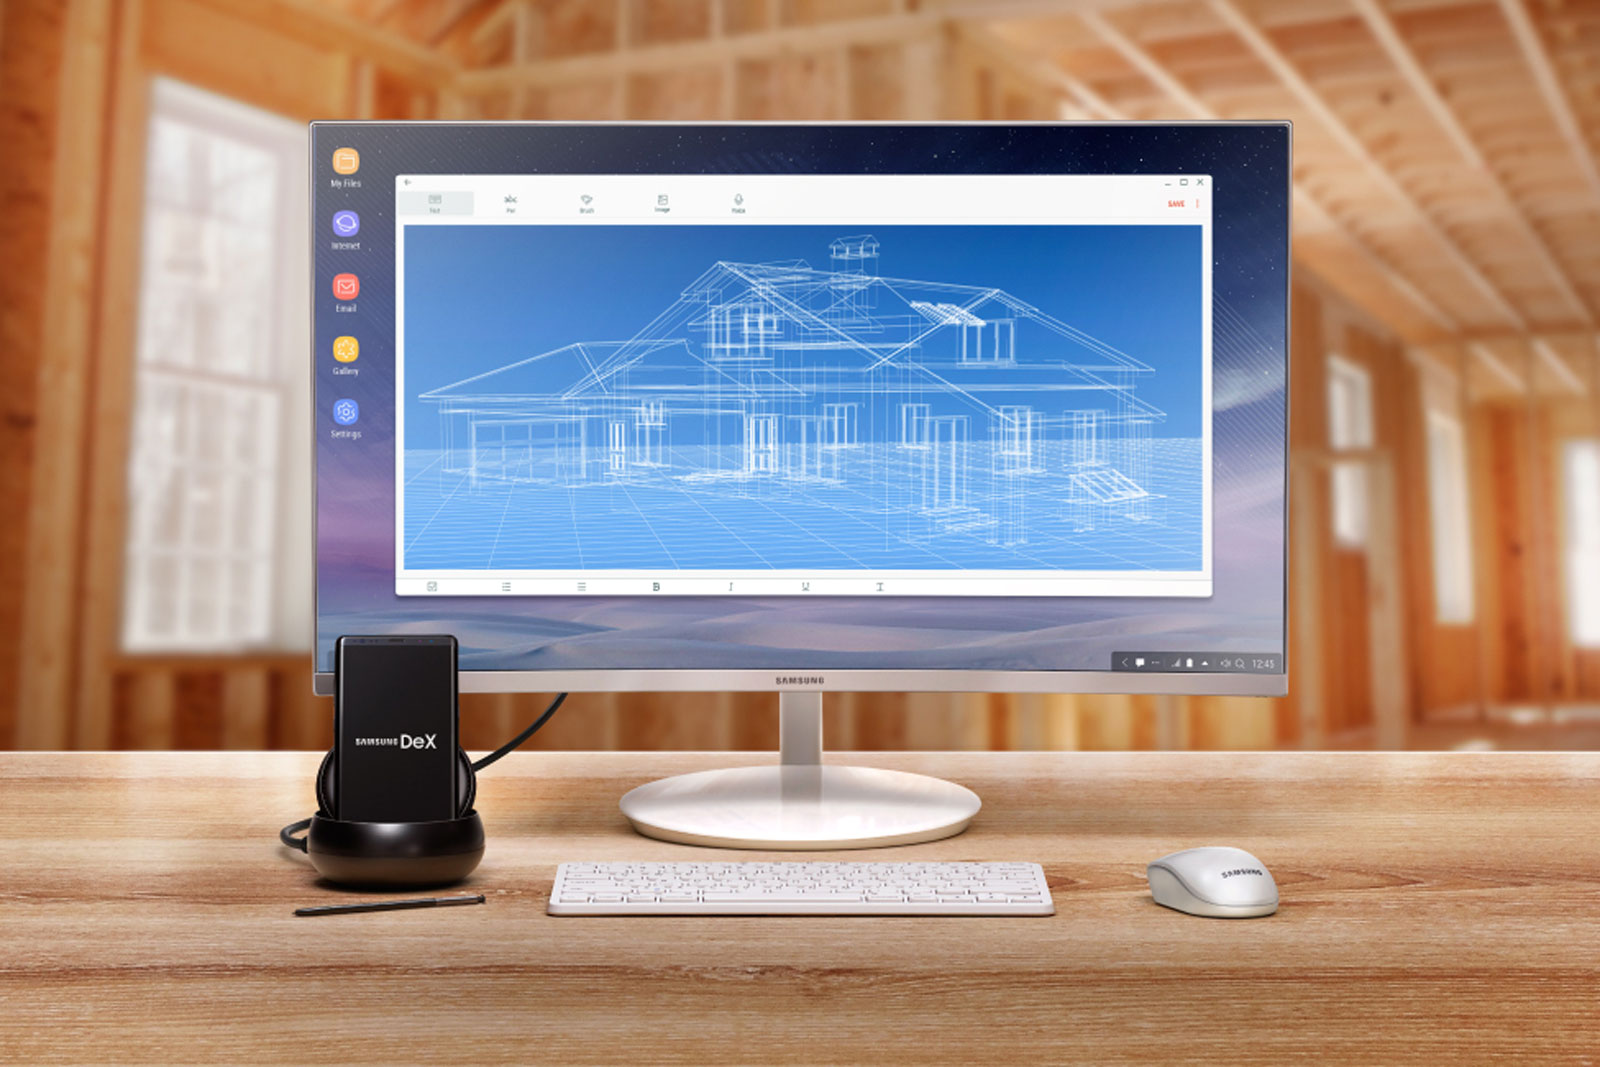 samsung-dex-linux-on-galaxy.jpg